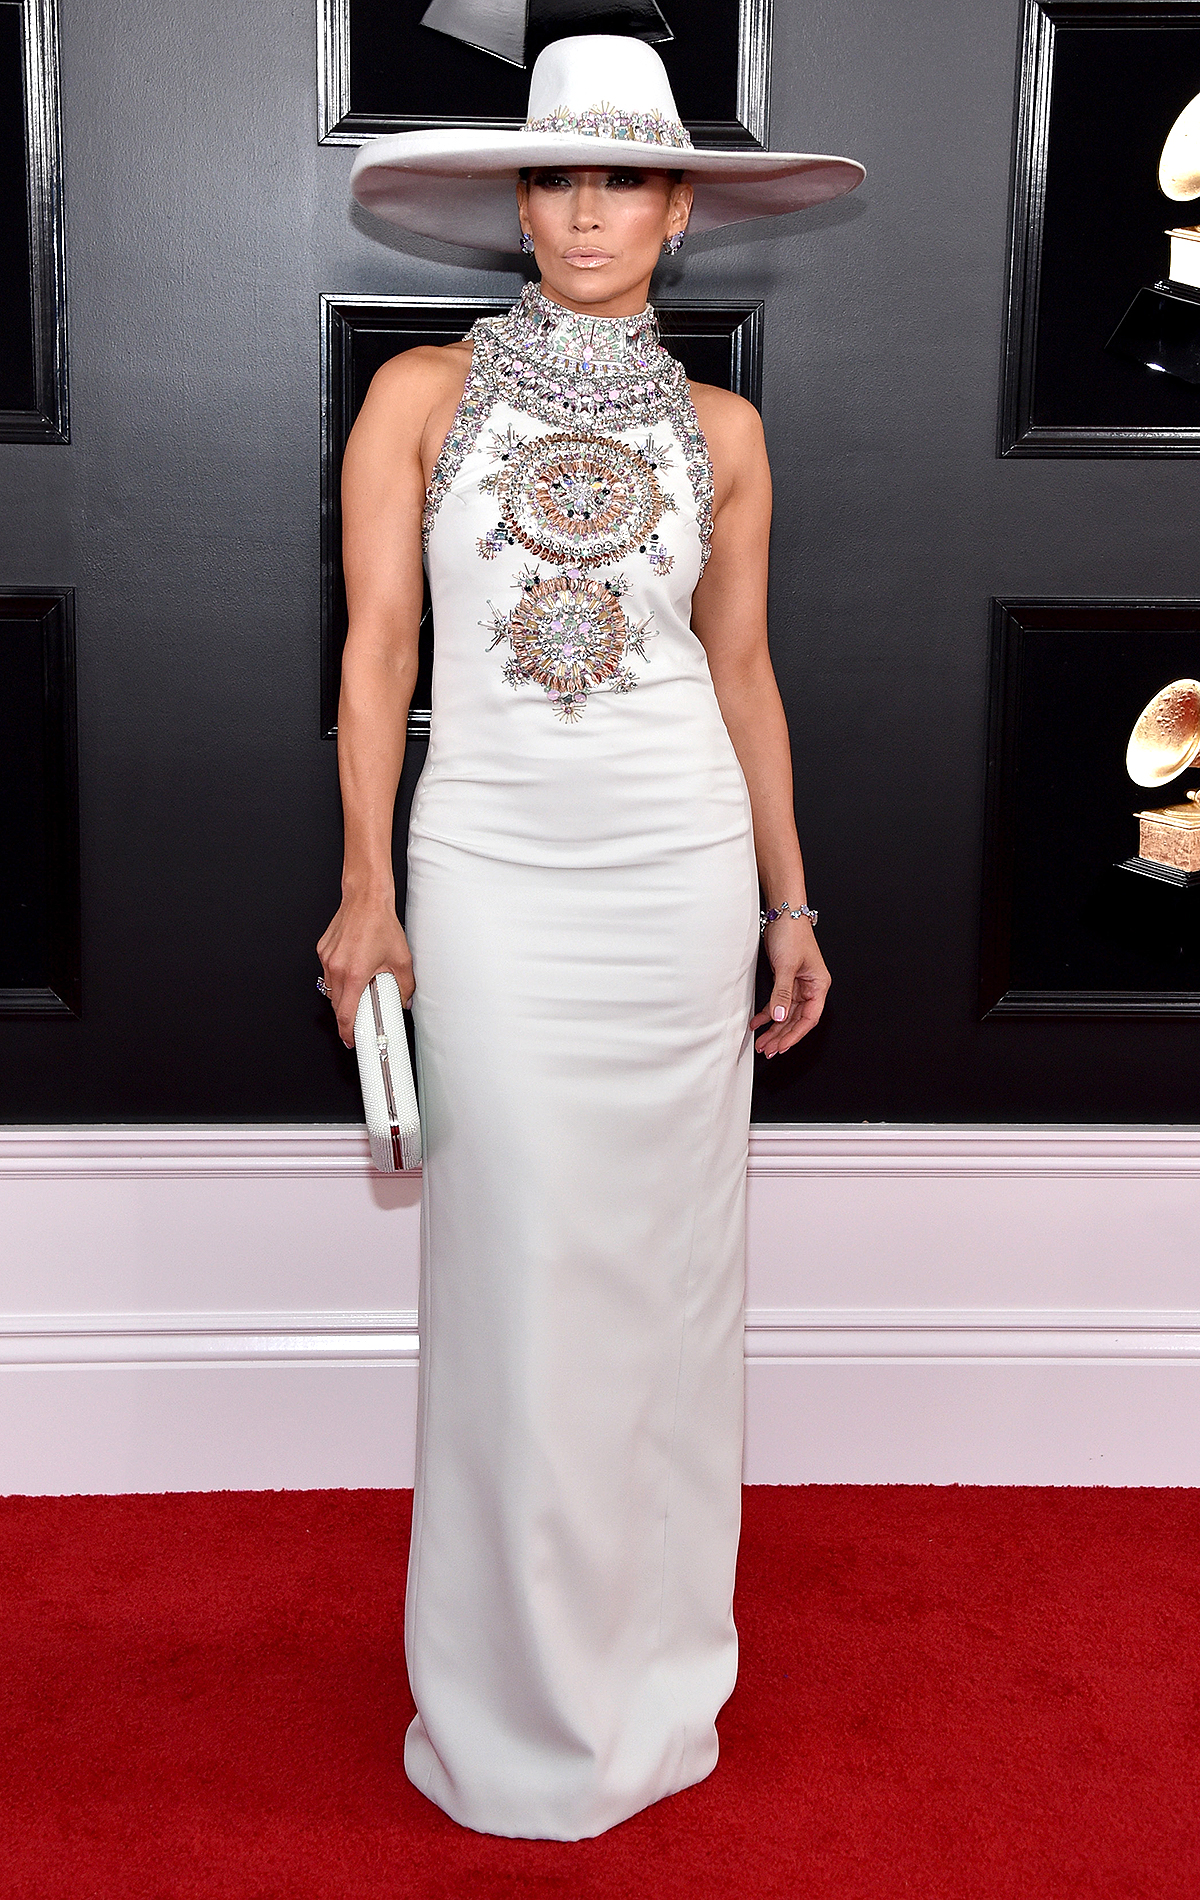 2019 grammy awards see all the stars on the red carpet ew com https ew com grammys grammy awards 2019 red carpet photos